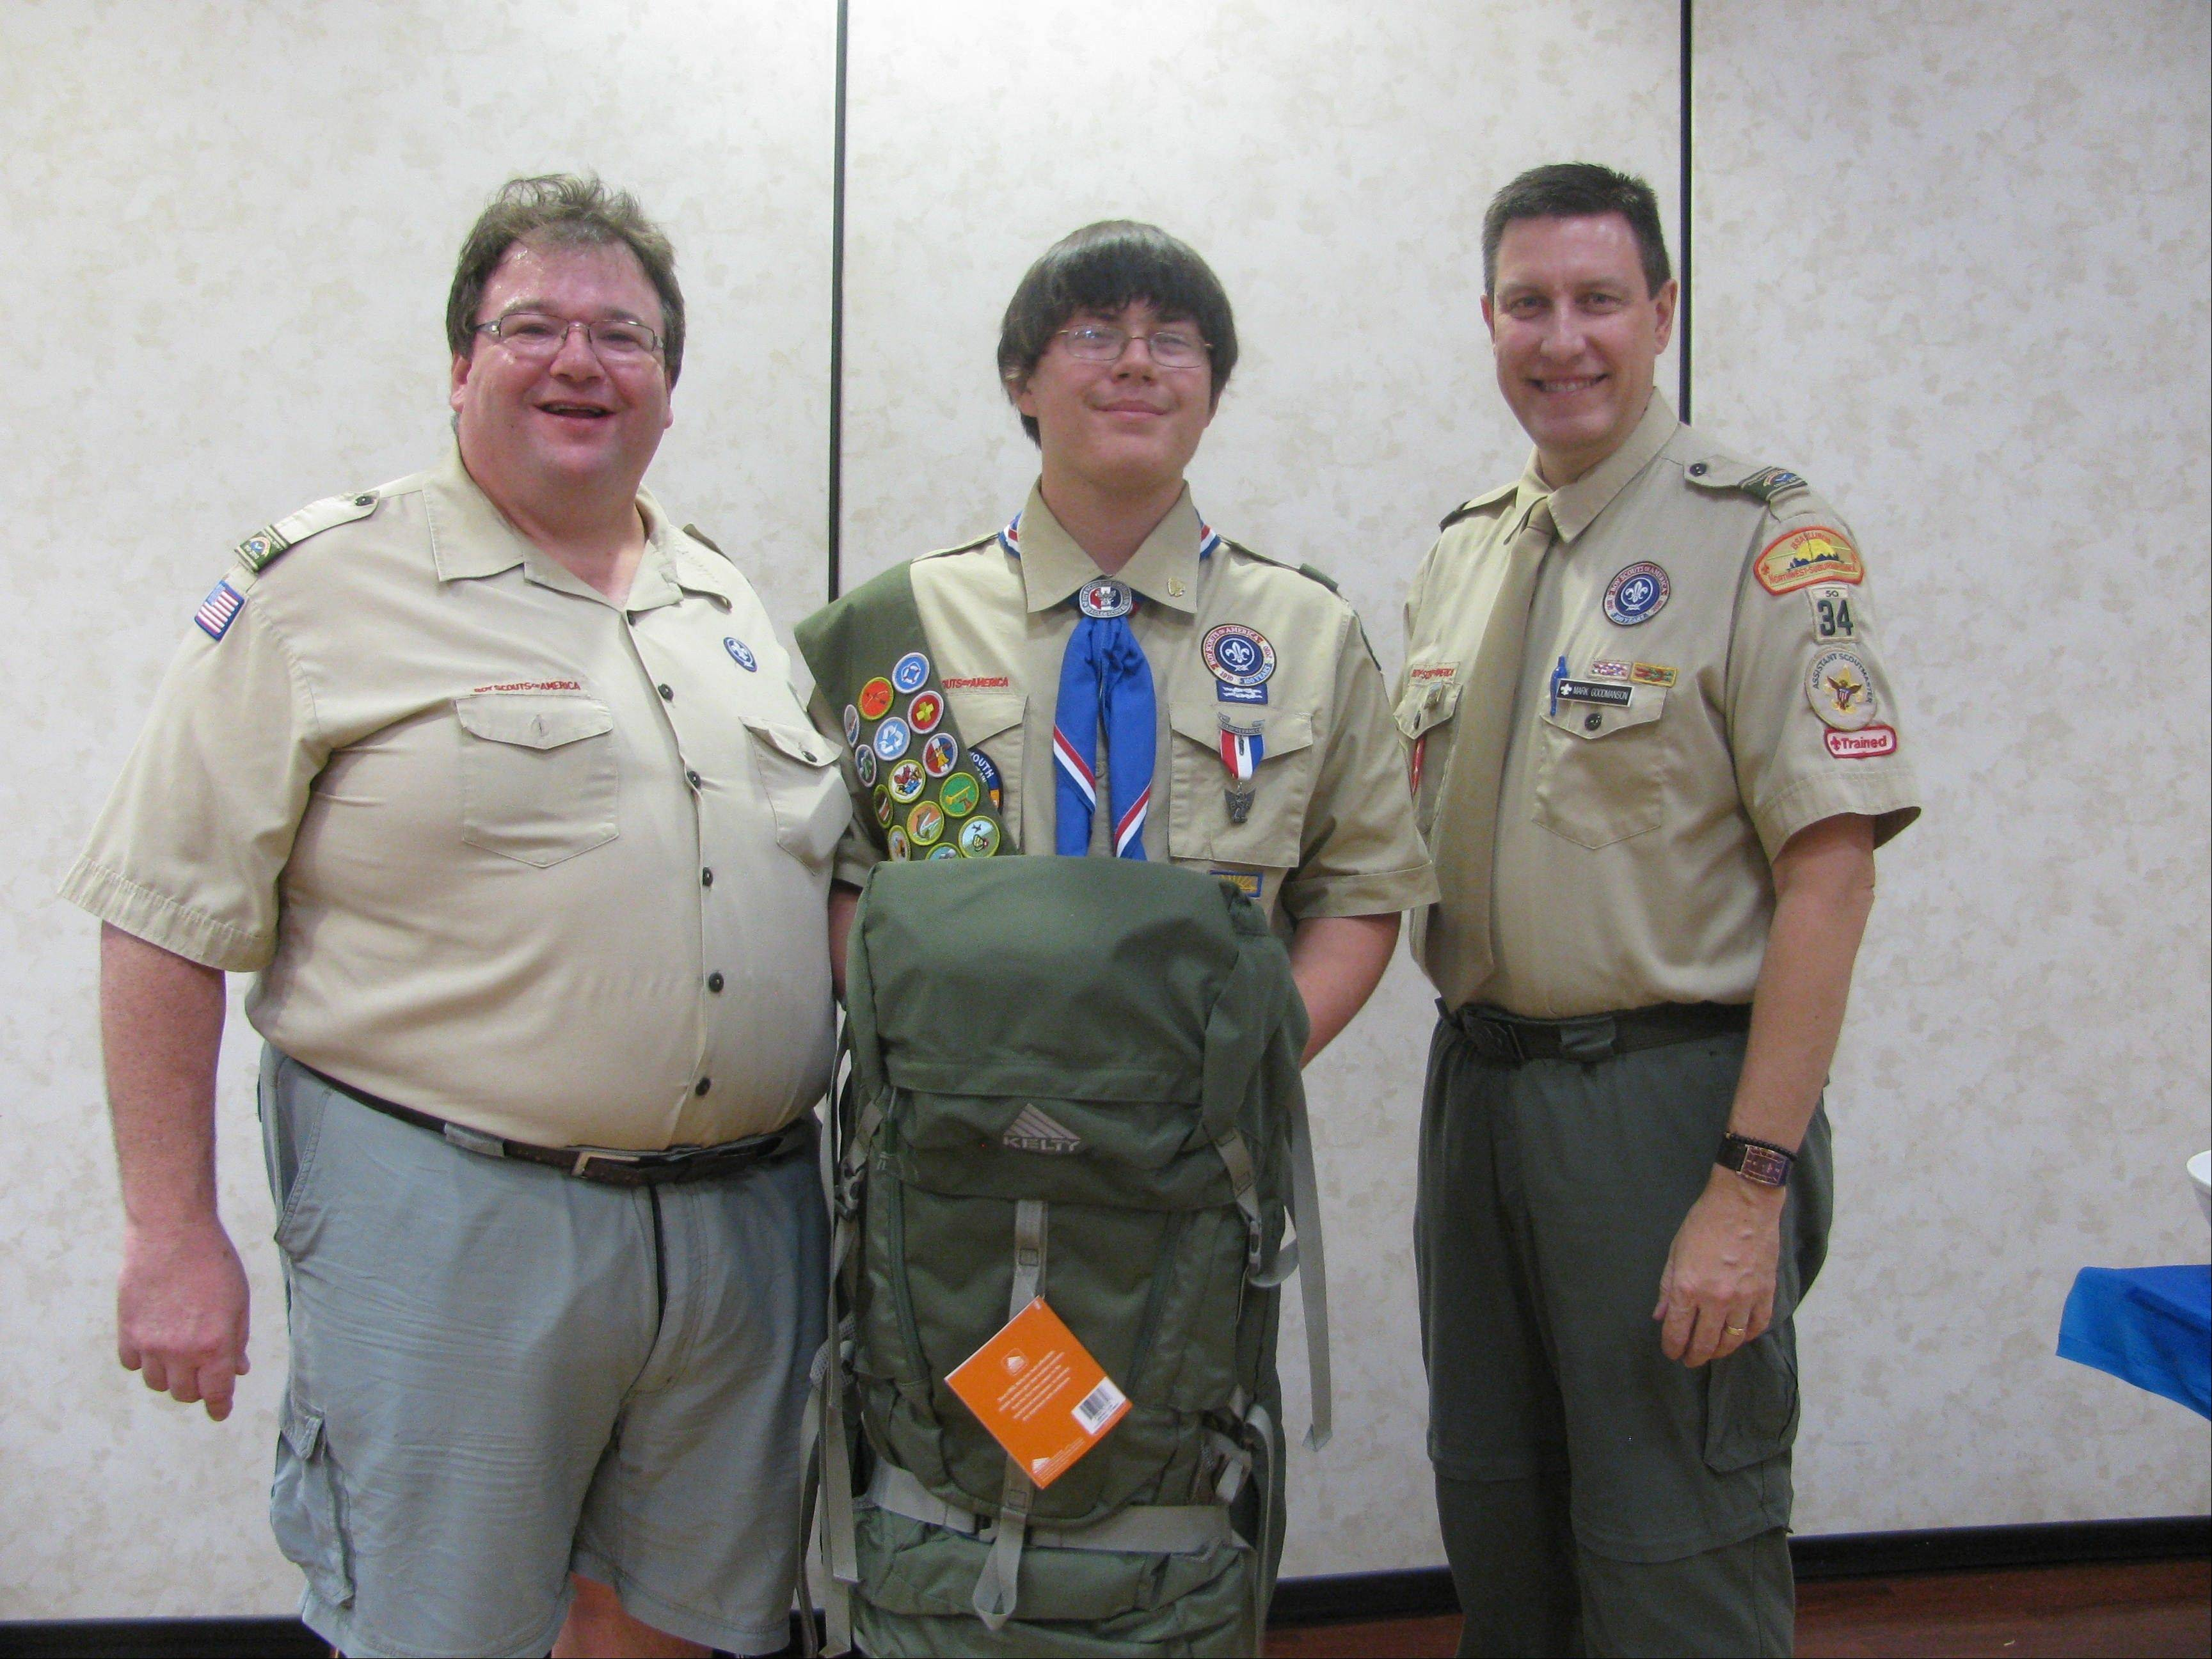 From left, Scoutmaster Marc Mendelsohn Troop 34 Arlington Heights, Eagle Scout Matthew J. Wiewel and Scoutmaster Mark Goodmanson at Matthew's Eagle Court of Honor Sept. 30.